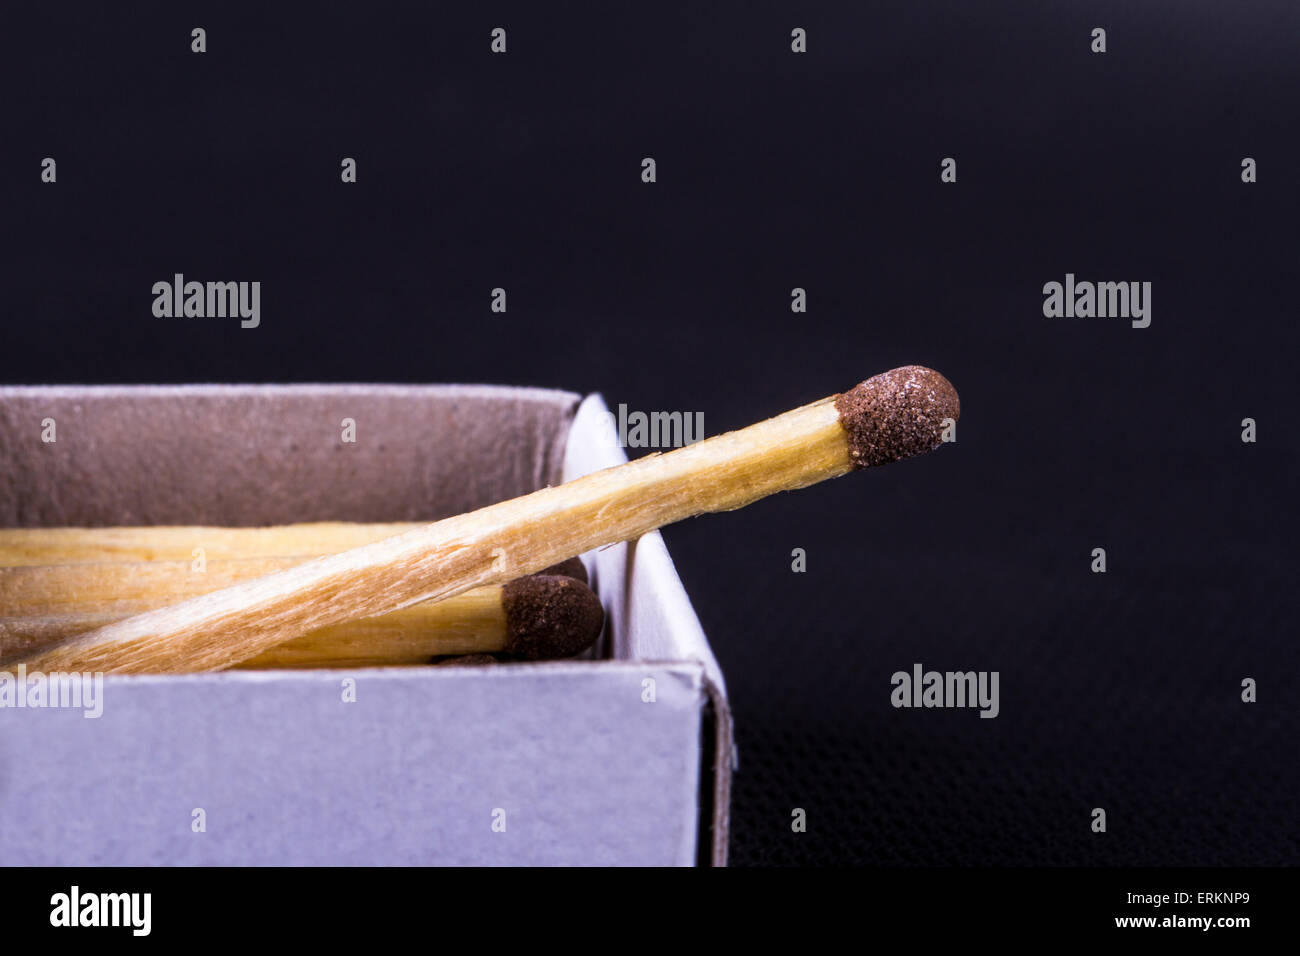 Close up detailed front view of a match in a matchbox, on black background. - Stock Image